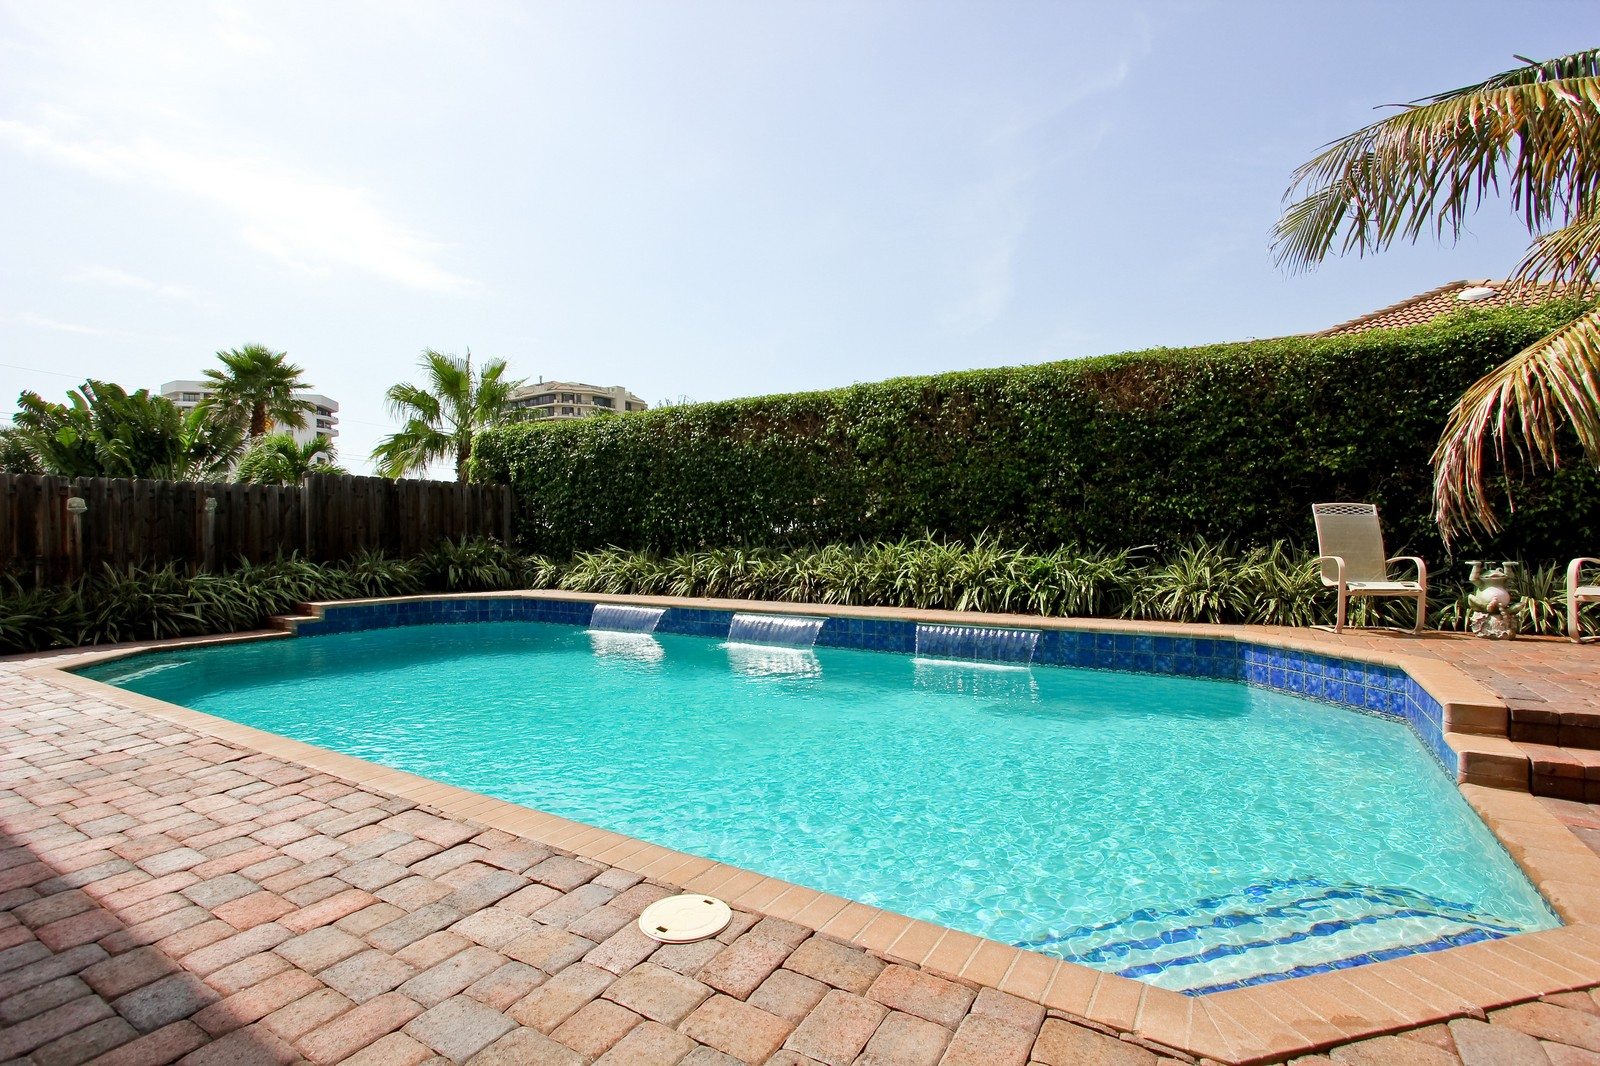 Real Estate Photography - 430 N. Lyra Circle, Juno Beach, FL, 33408 - Location 2